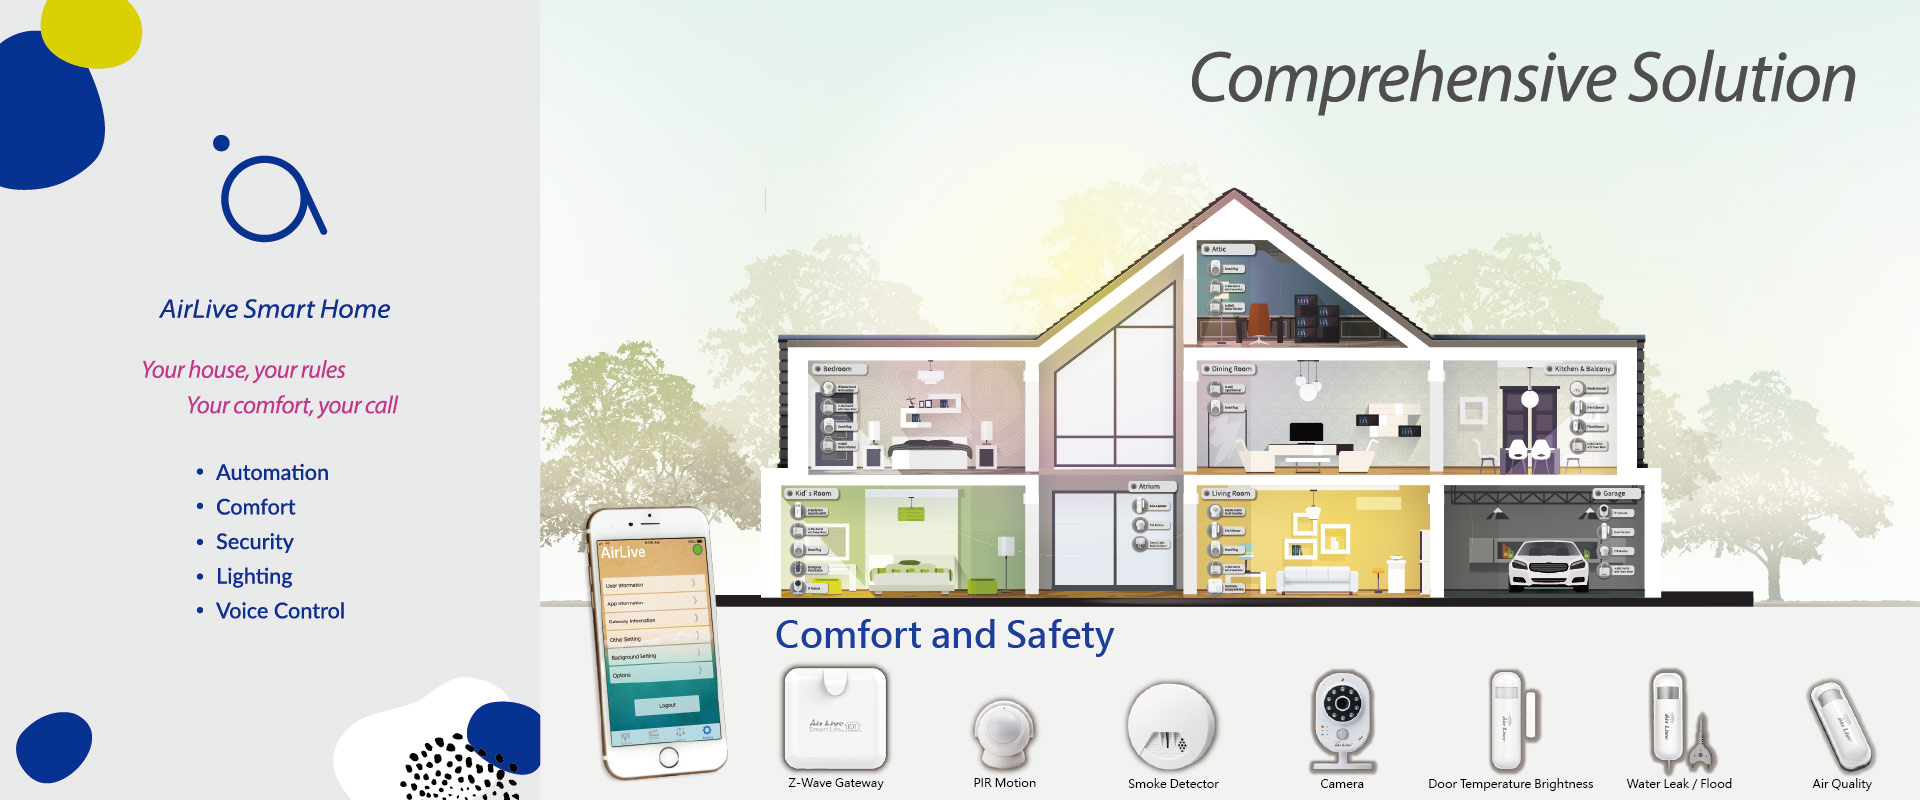 Comprehensive Solution - Comfort and Safety